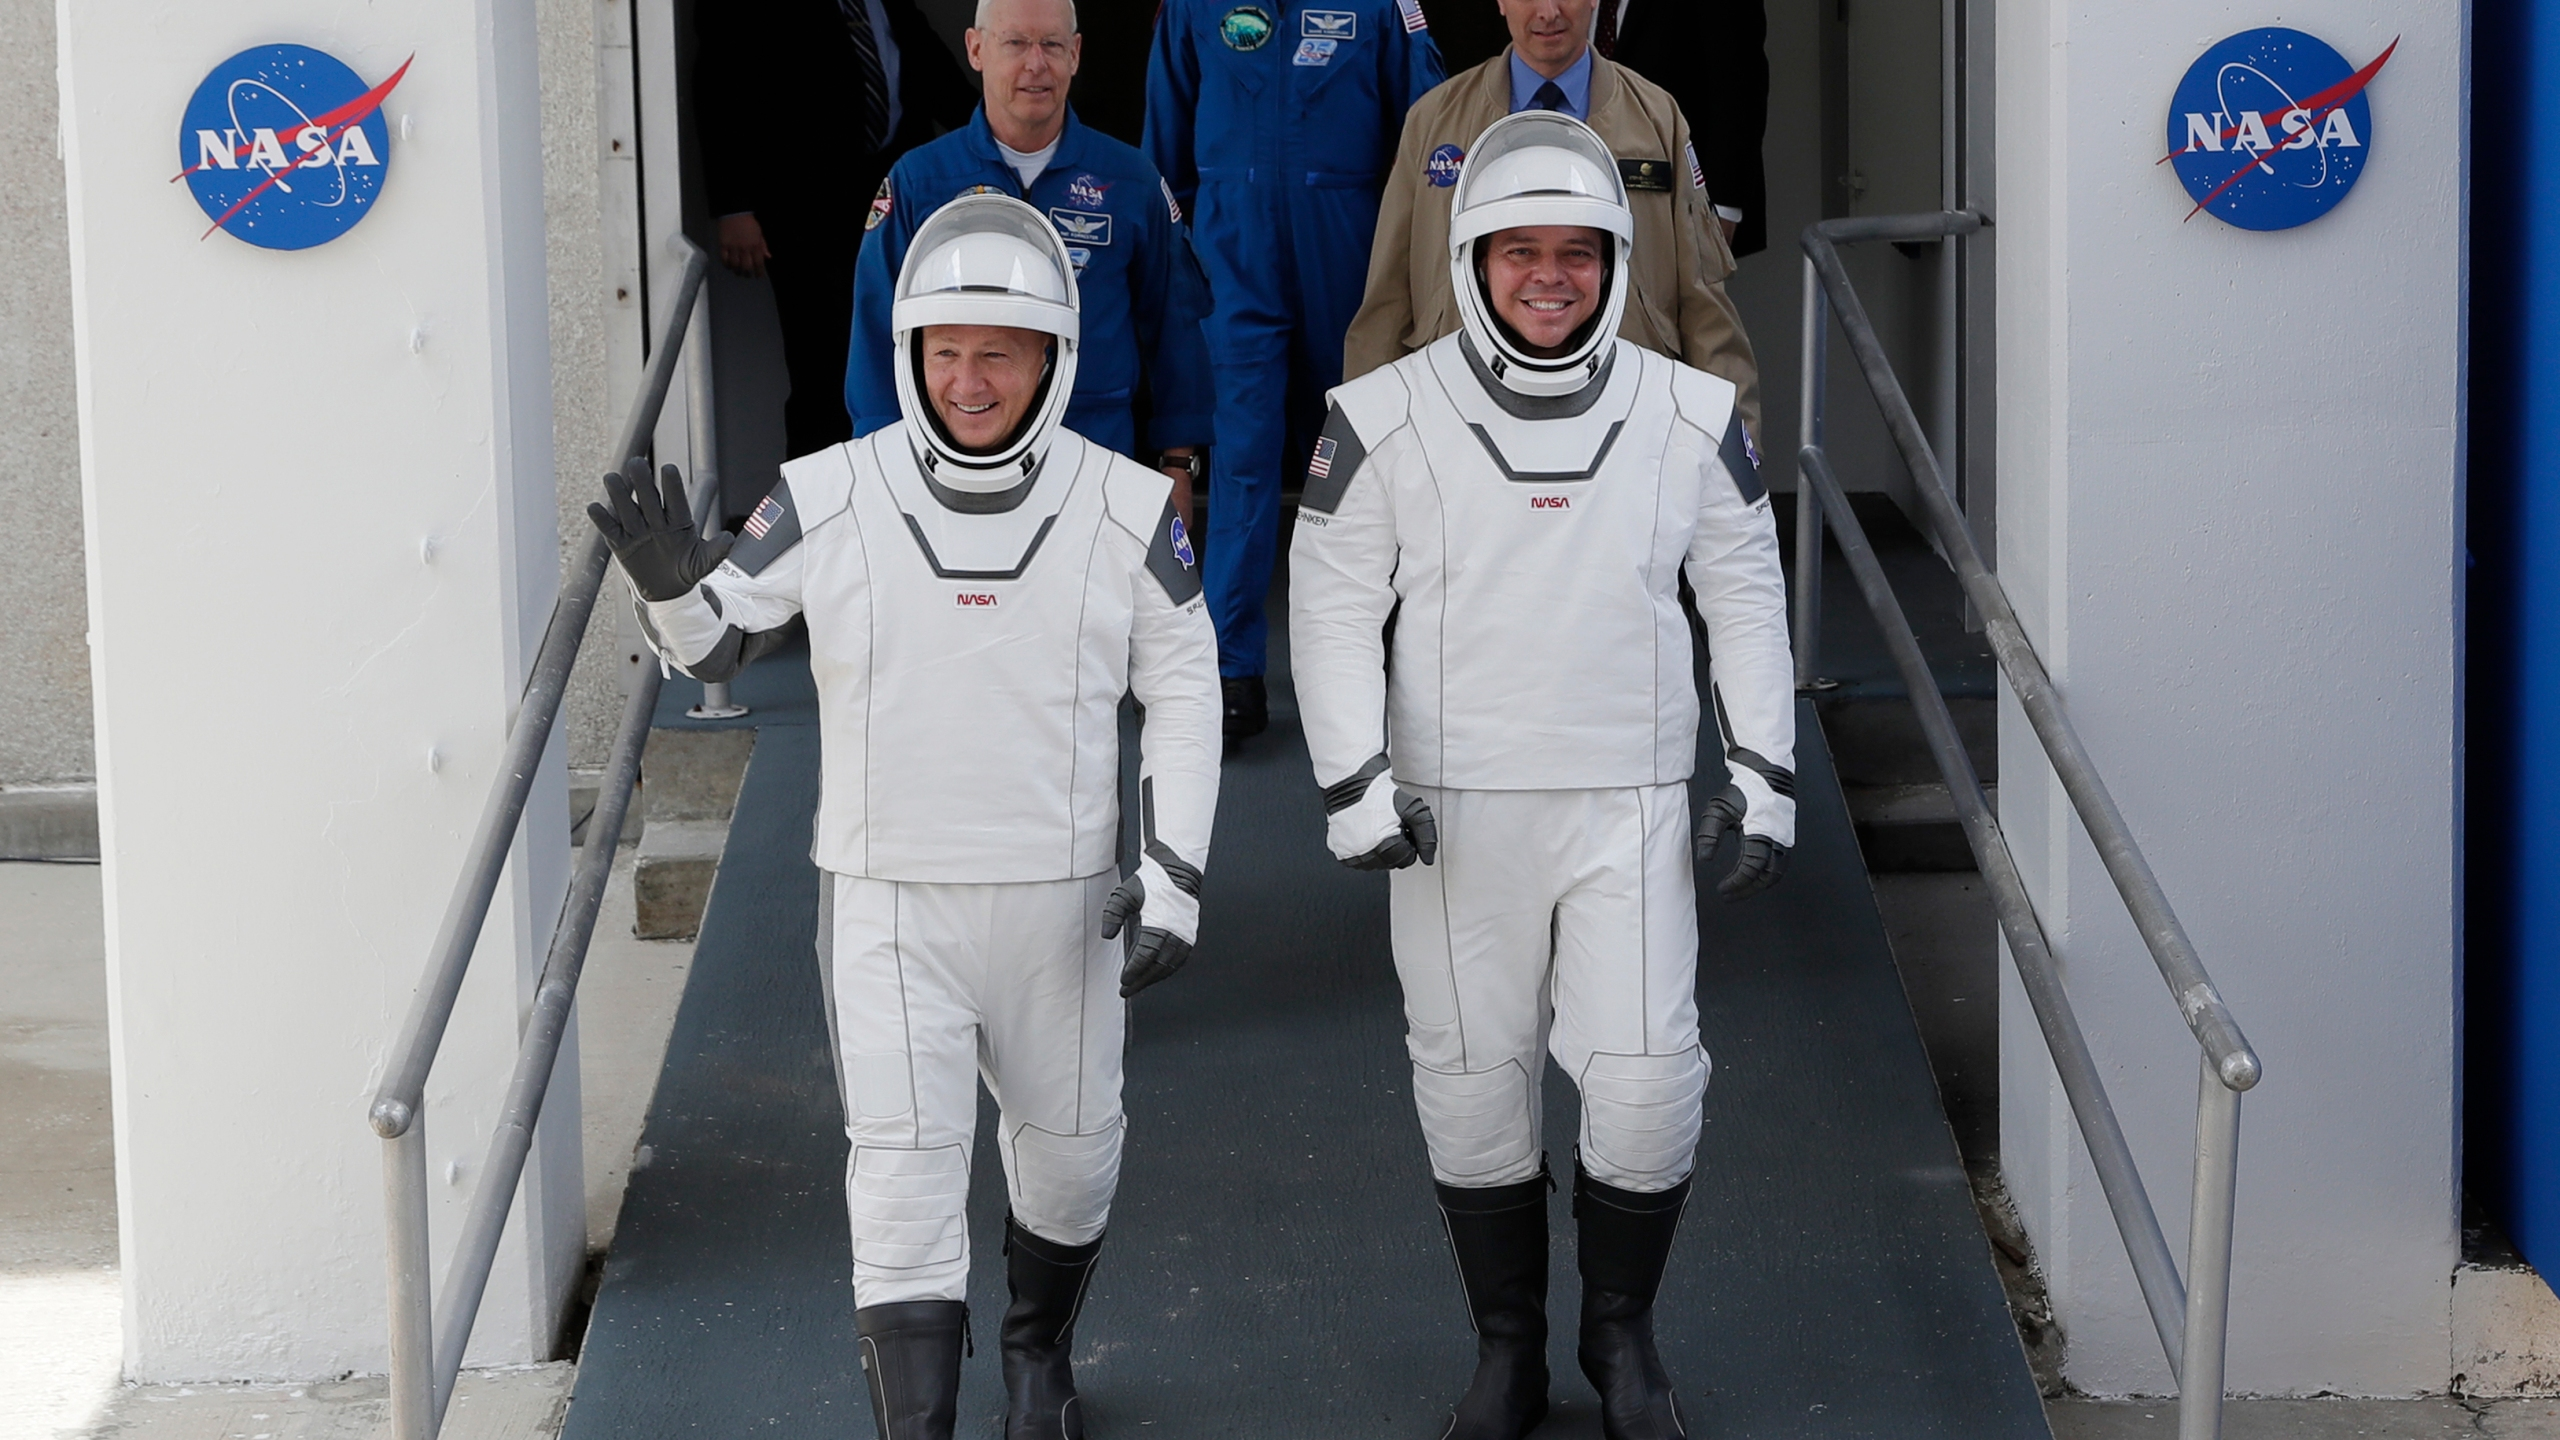 NASA astronauts Douglas Hurley, left, and Robert Behnken wave as they walk out of the Neil A. Armstrong Operations and Checkout Building on their way to Pad 39-A, at the Kennedy Space Center in Cape Canaveral, Fla., Wednesday, May 27, 2020. The two astronauts will fly on a SpaceX test flight to the International Space Station. For the first time in nearly a decade, astronauts will blast into orbit aboard an American rocket from American soil, a first for a private company. (AP Photo/John Raoux)